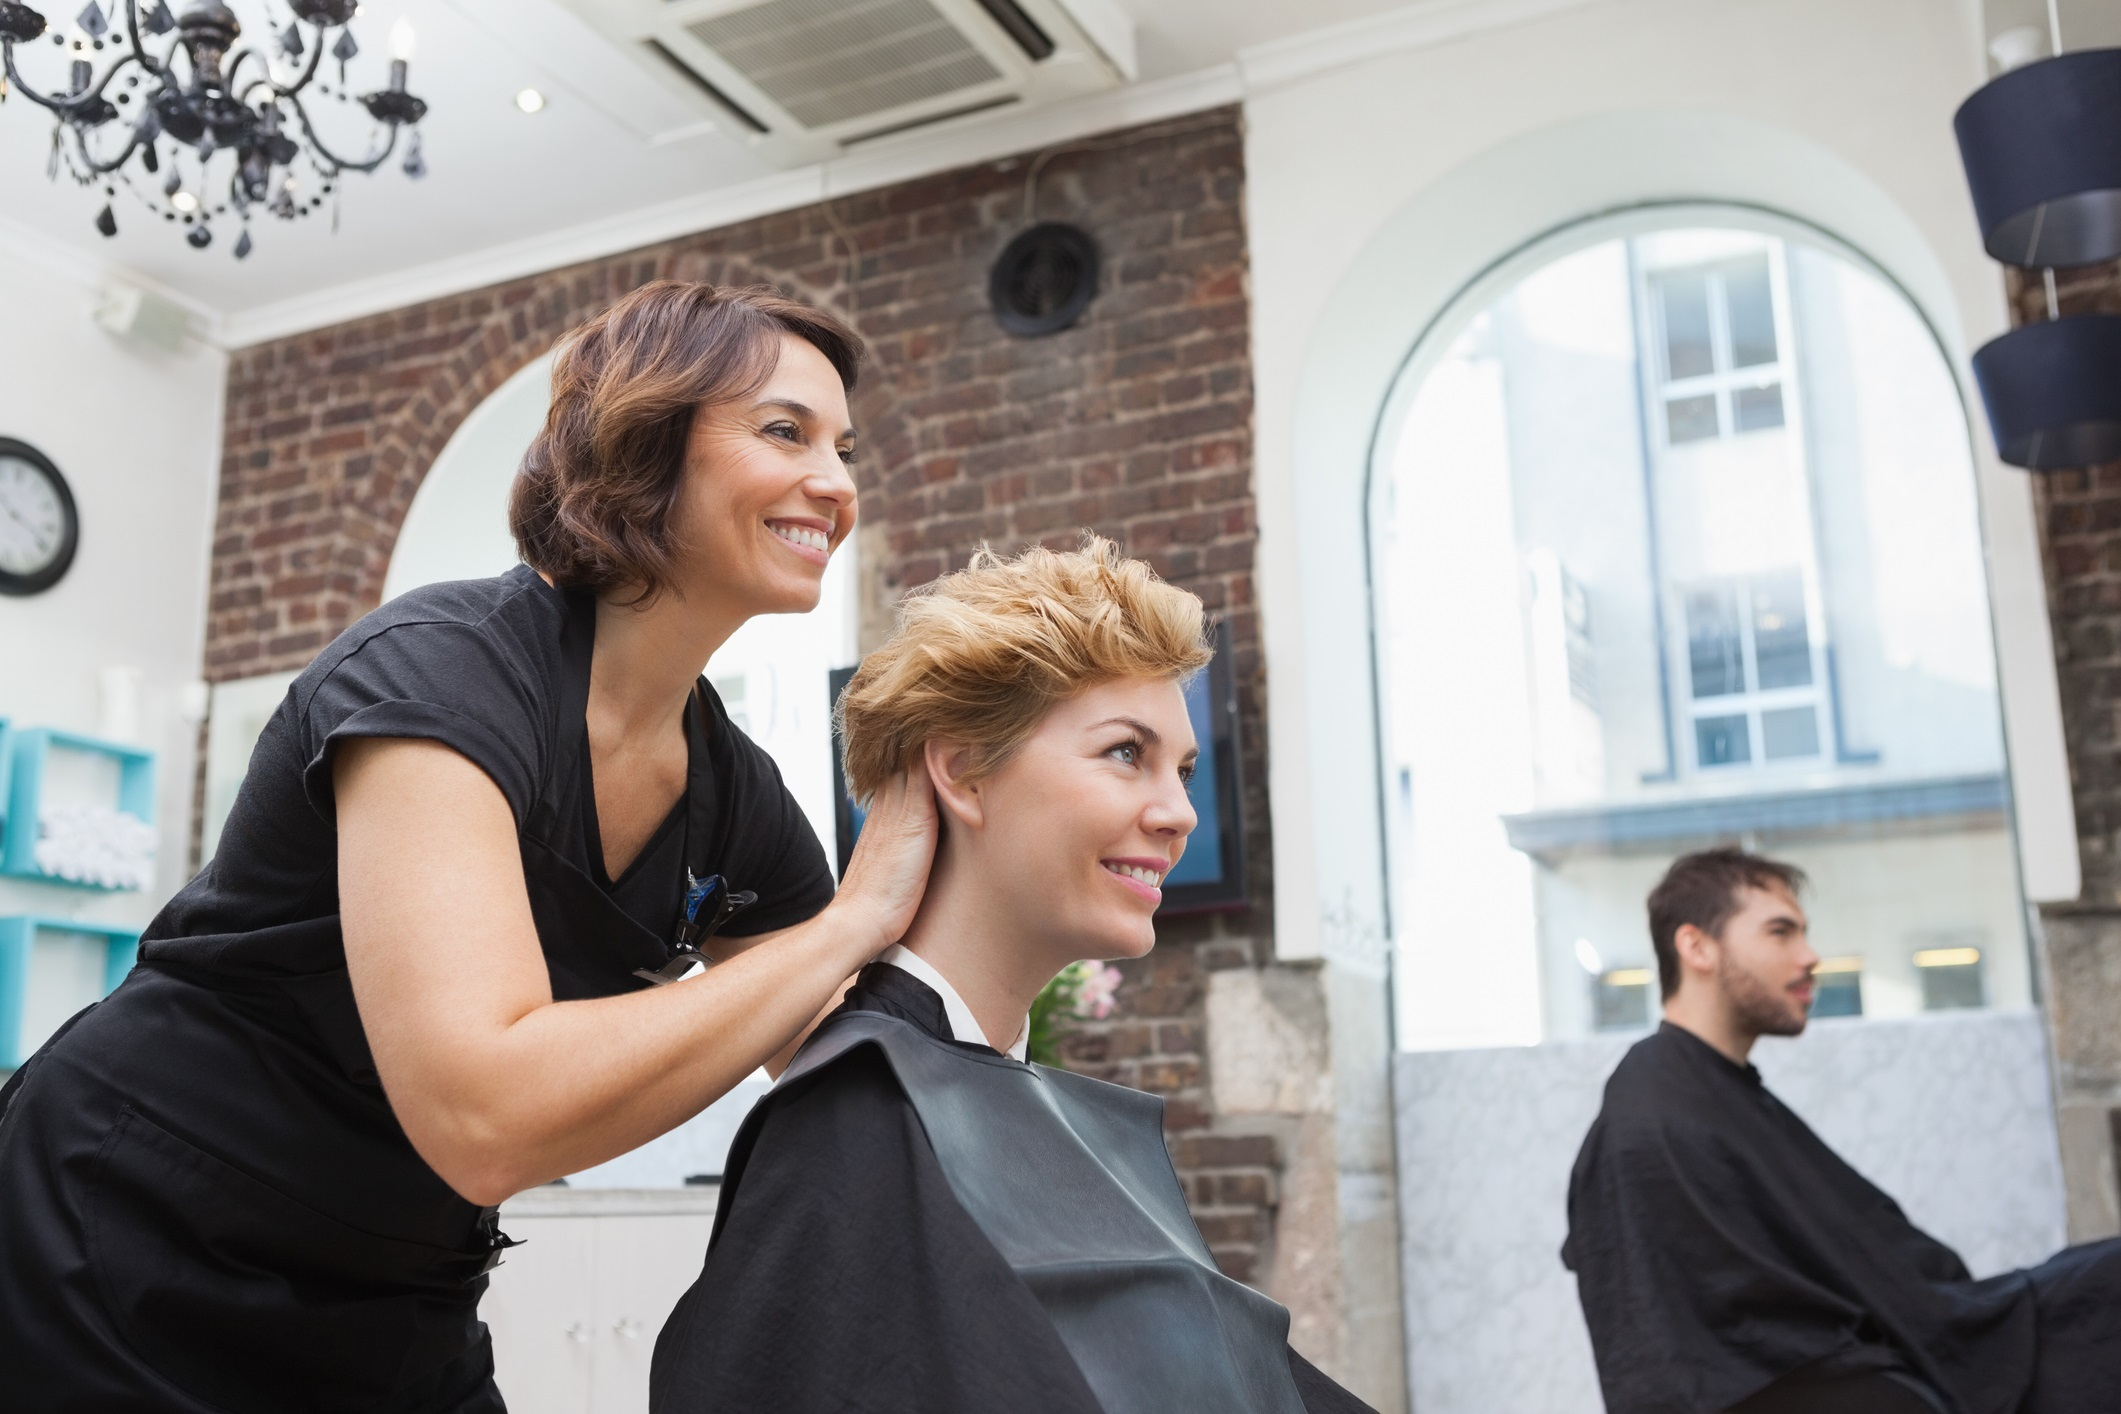 Bundaberg Hair Salon For Sale in Queensland